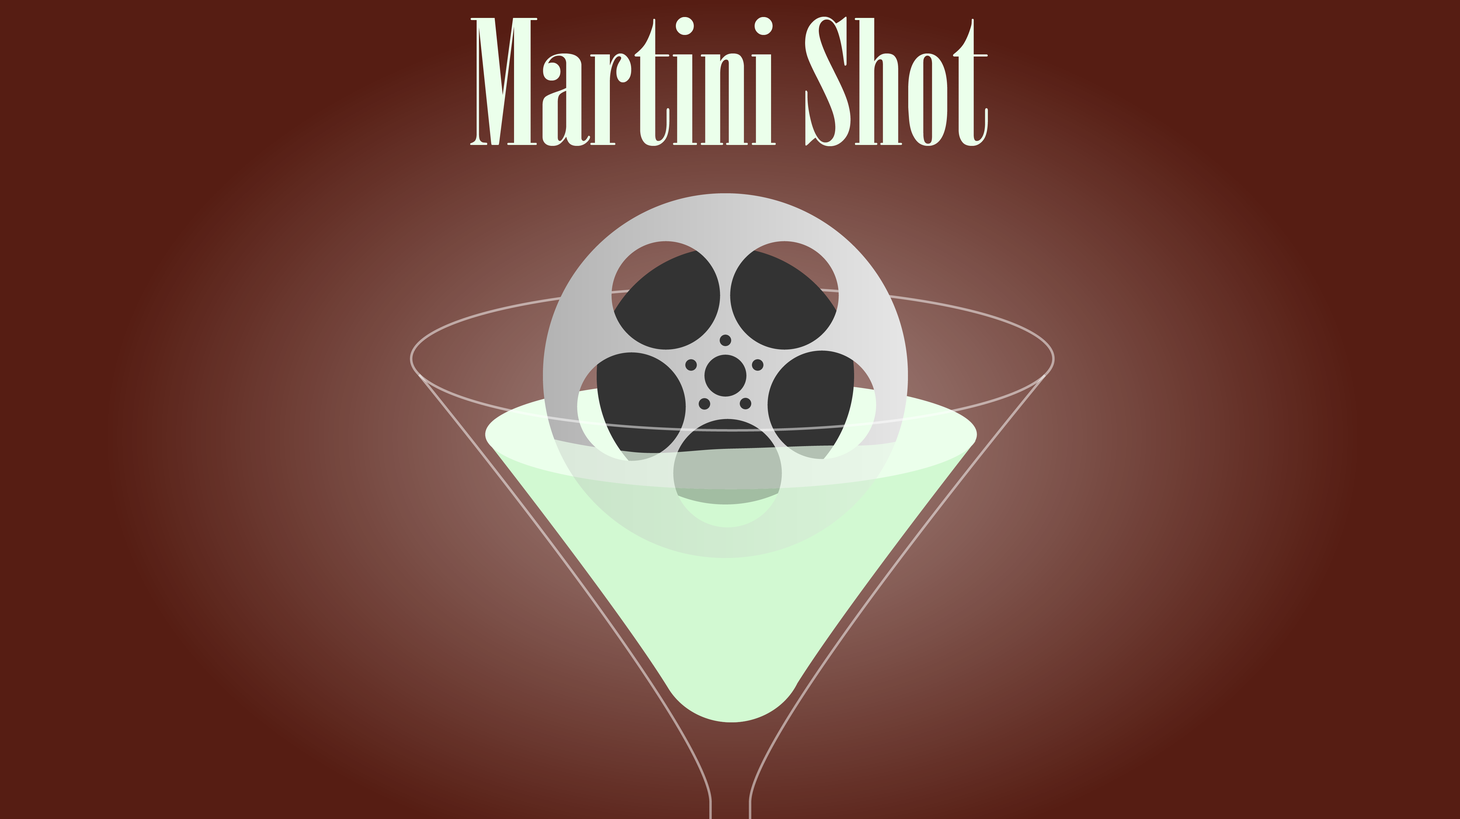 On this week's Martini Shot, Rob fails an essential job interview question to work for Peter Thiel's venture fund. Or, for that matter, to have a hit television show. It's the same question.